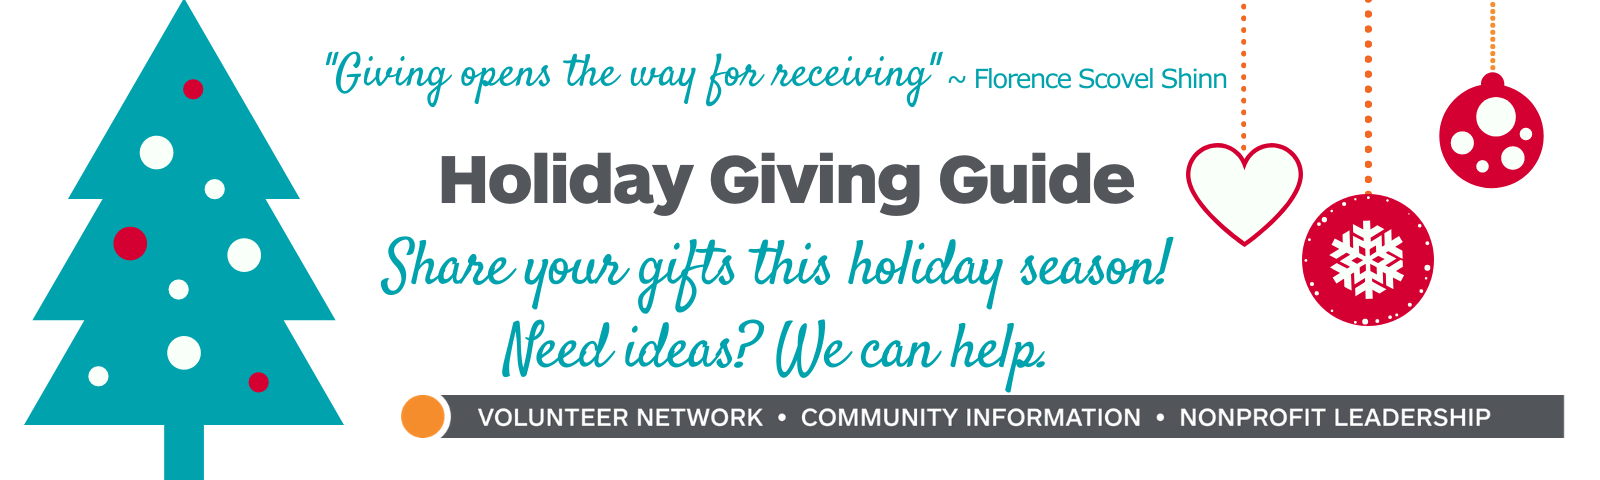 Holiday Giving Guide